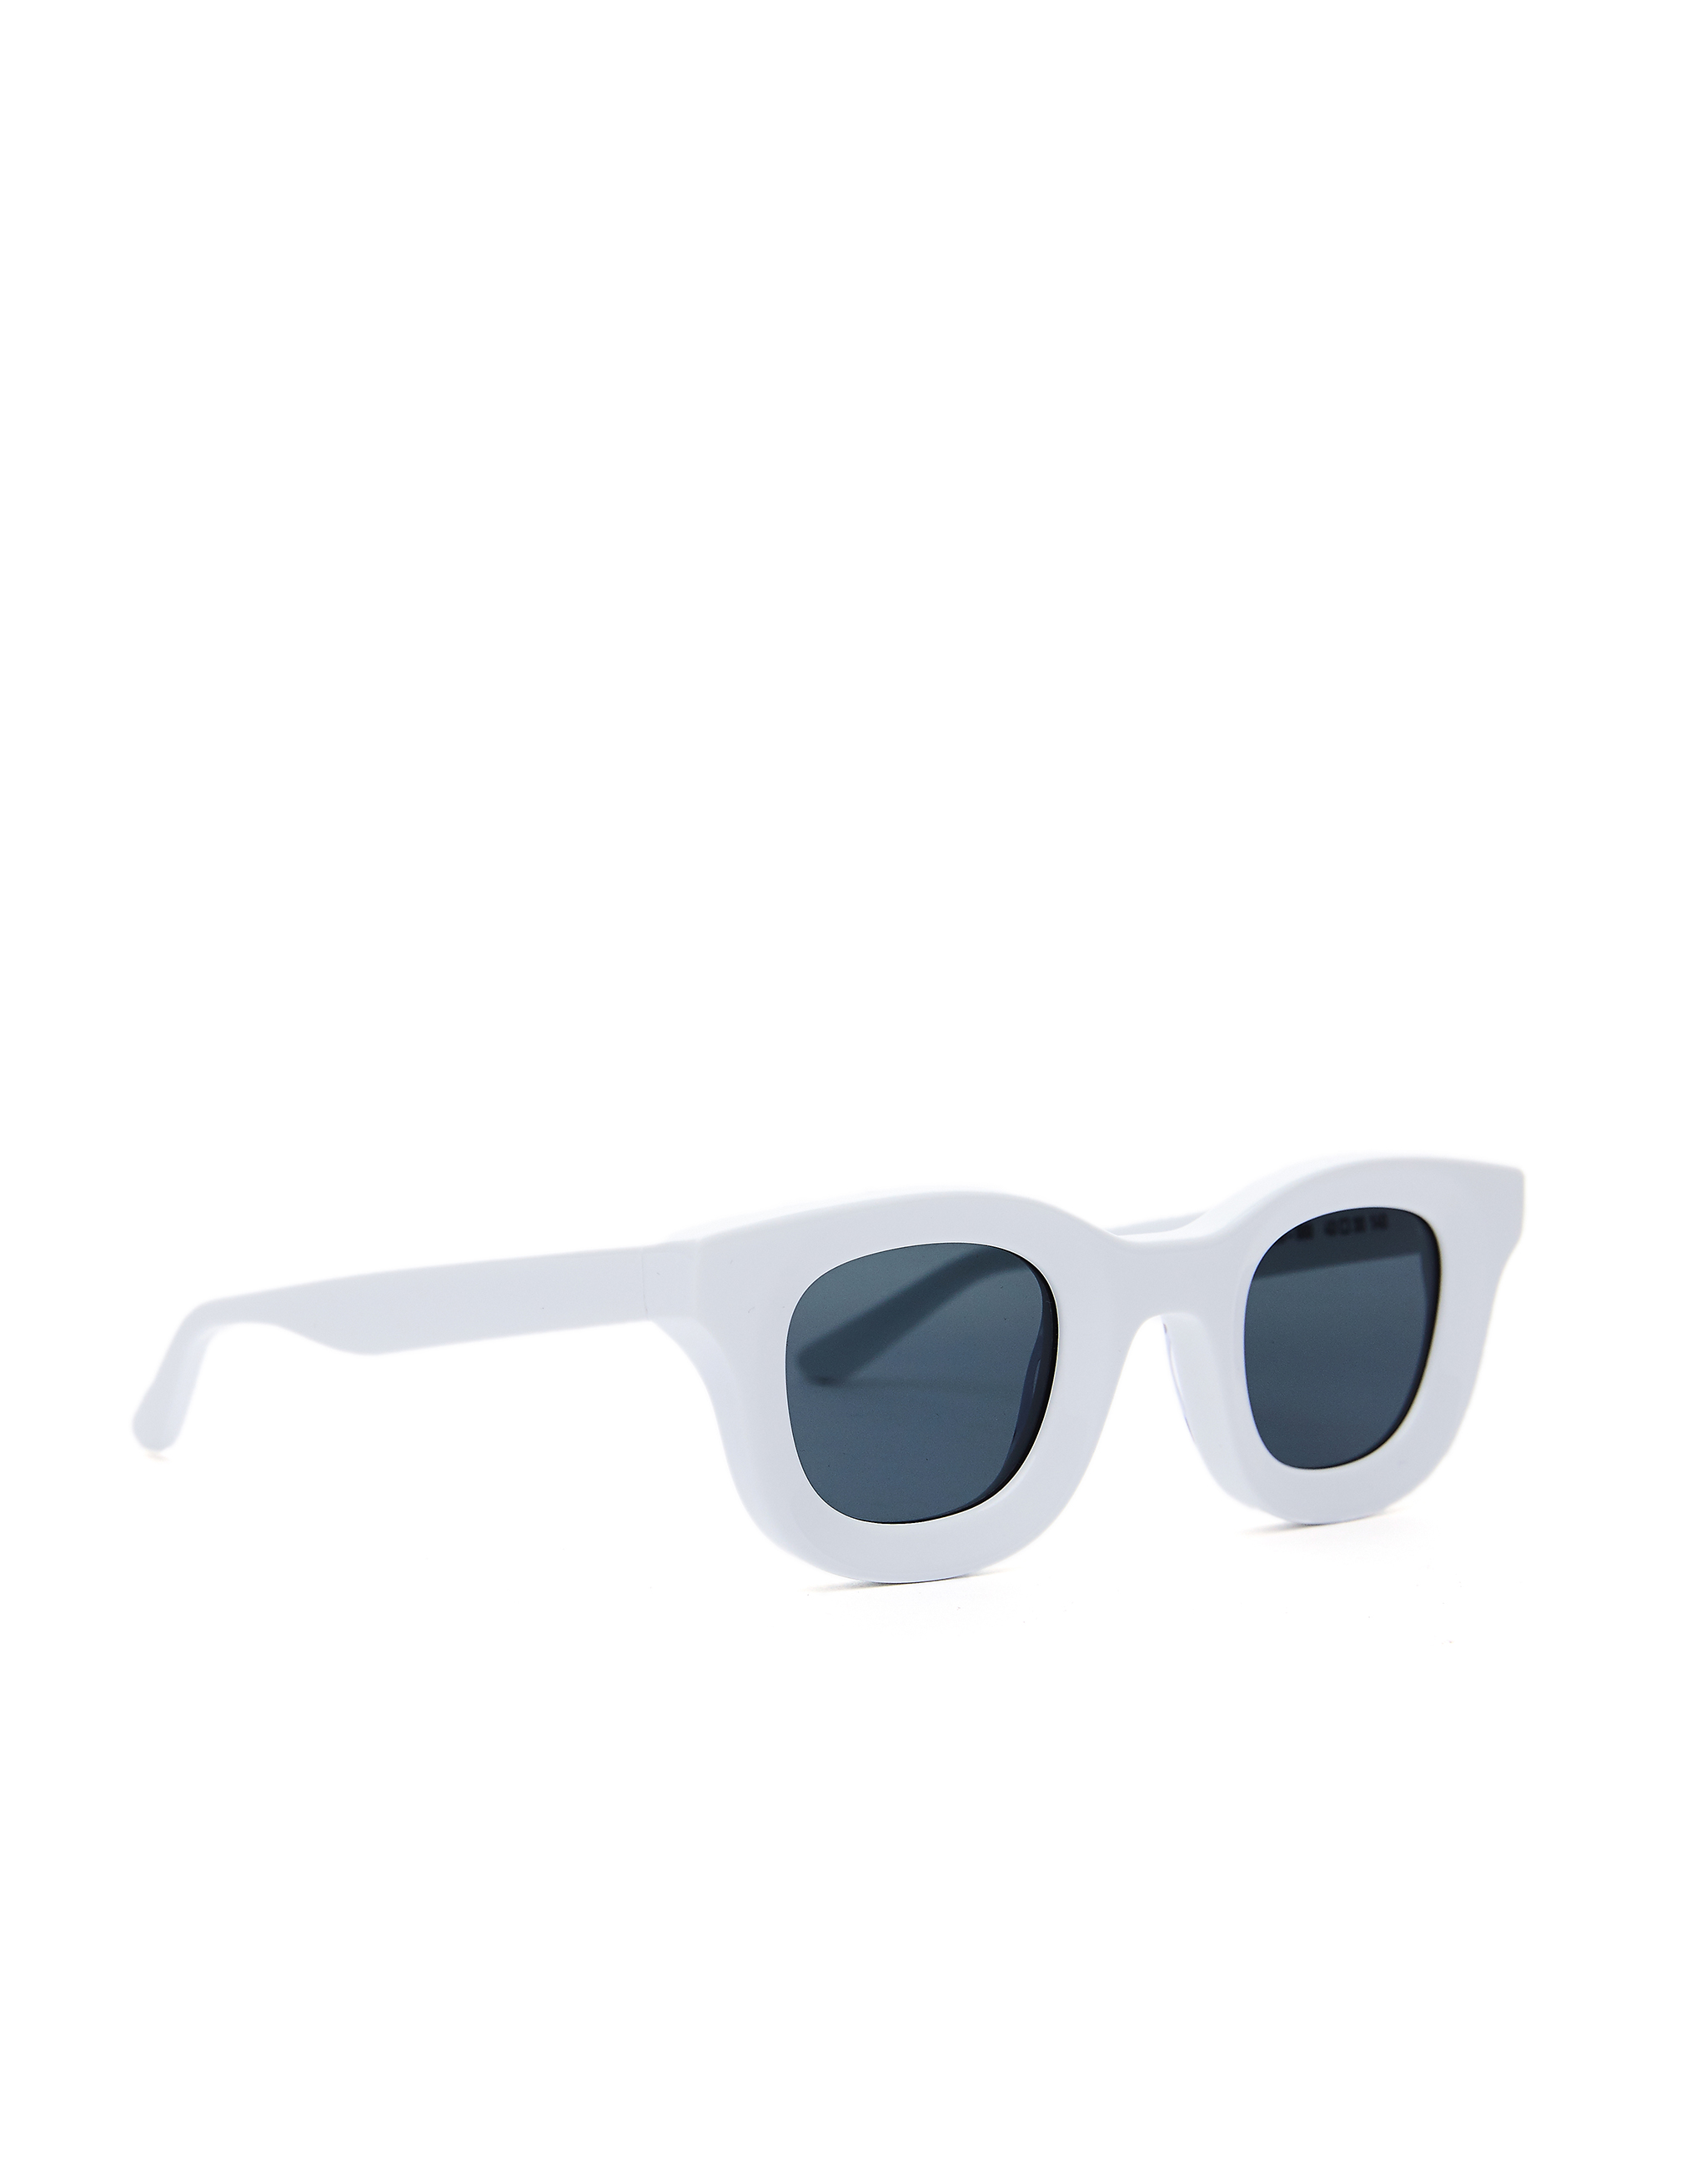 Thierry Lasry Thierry Lasry x Rhude White Rhodeo Sunglasses